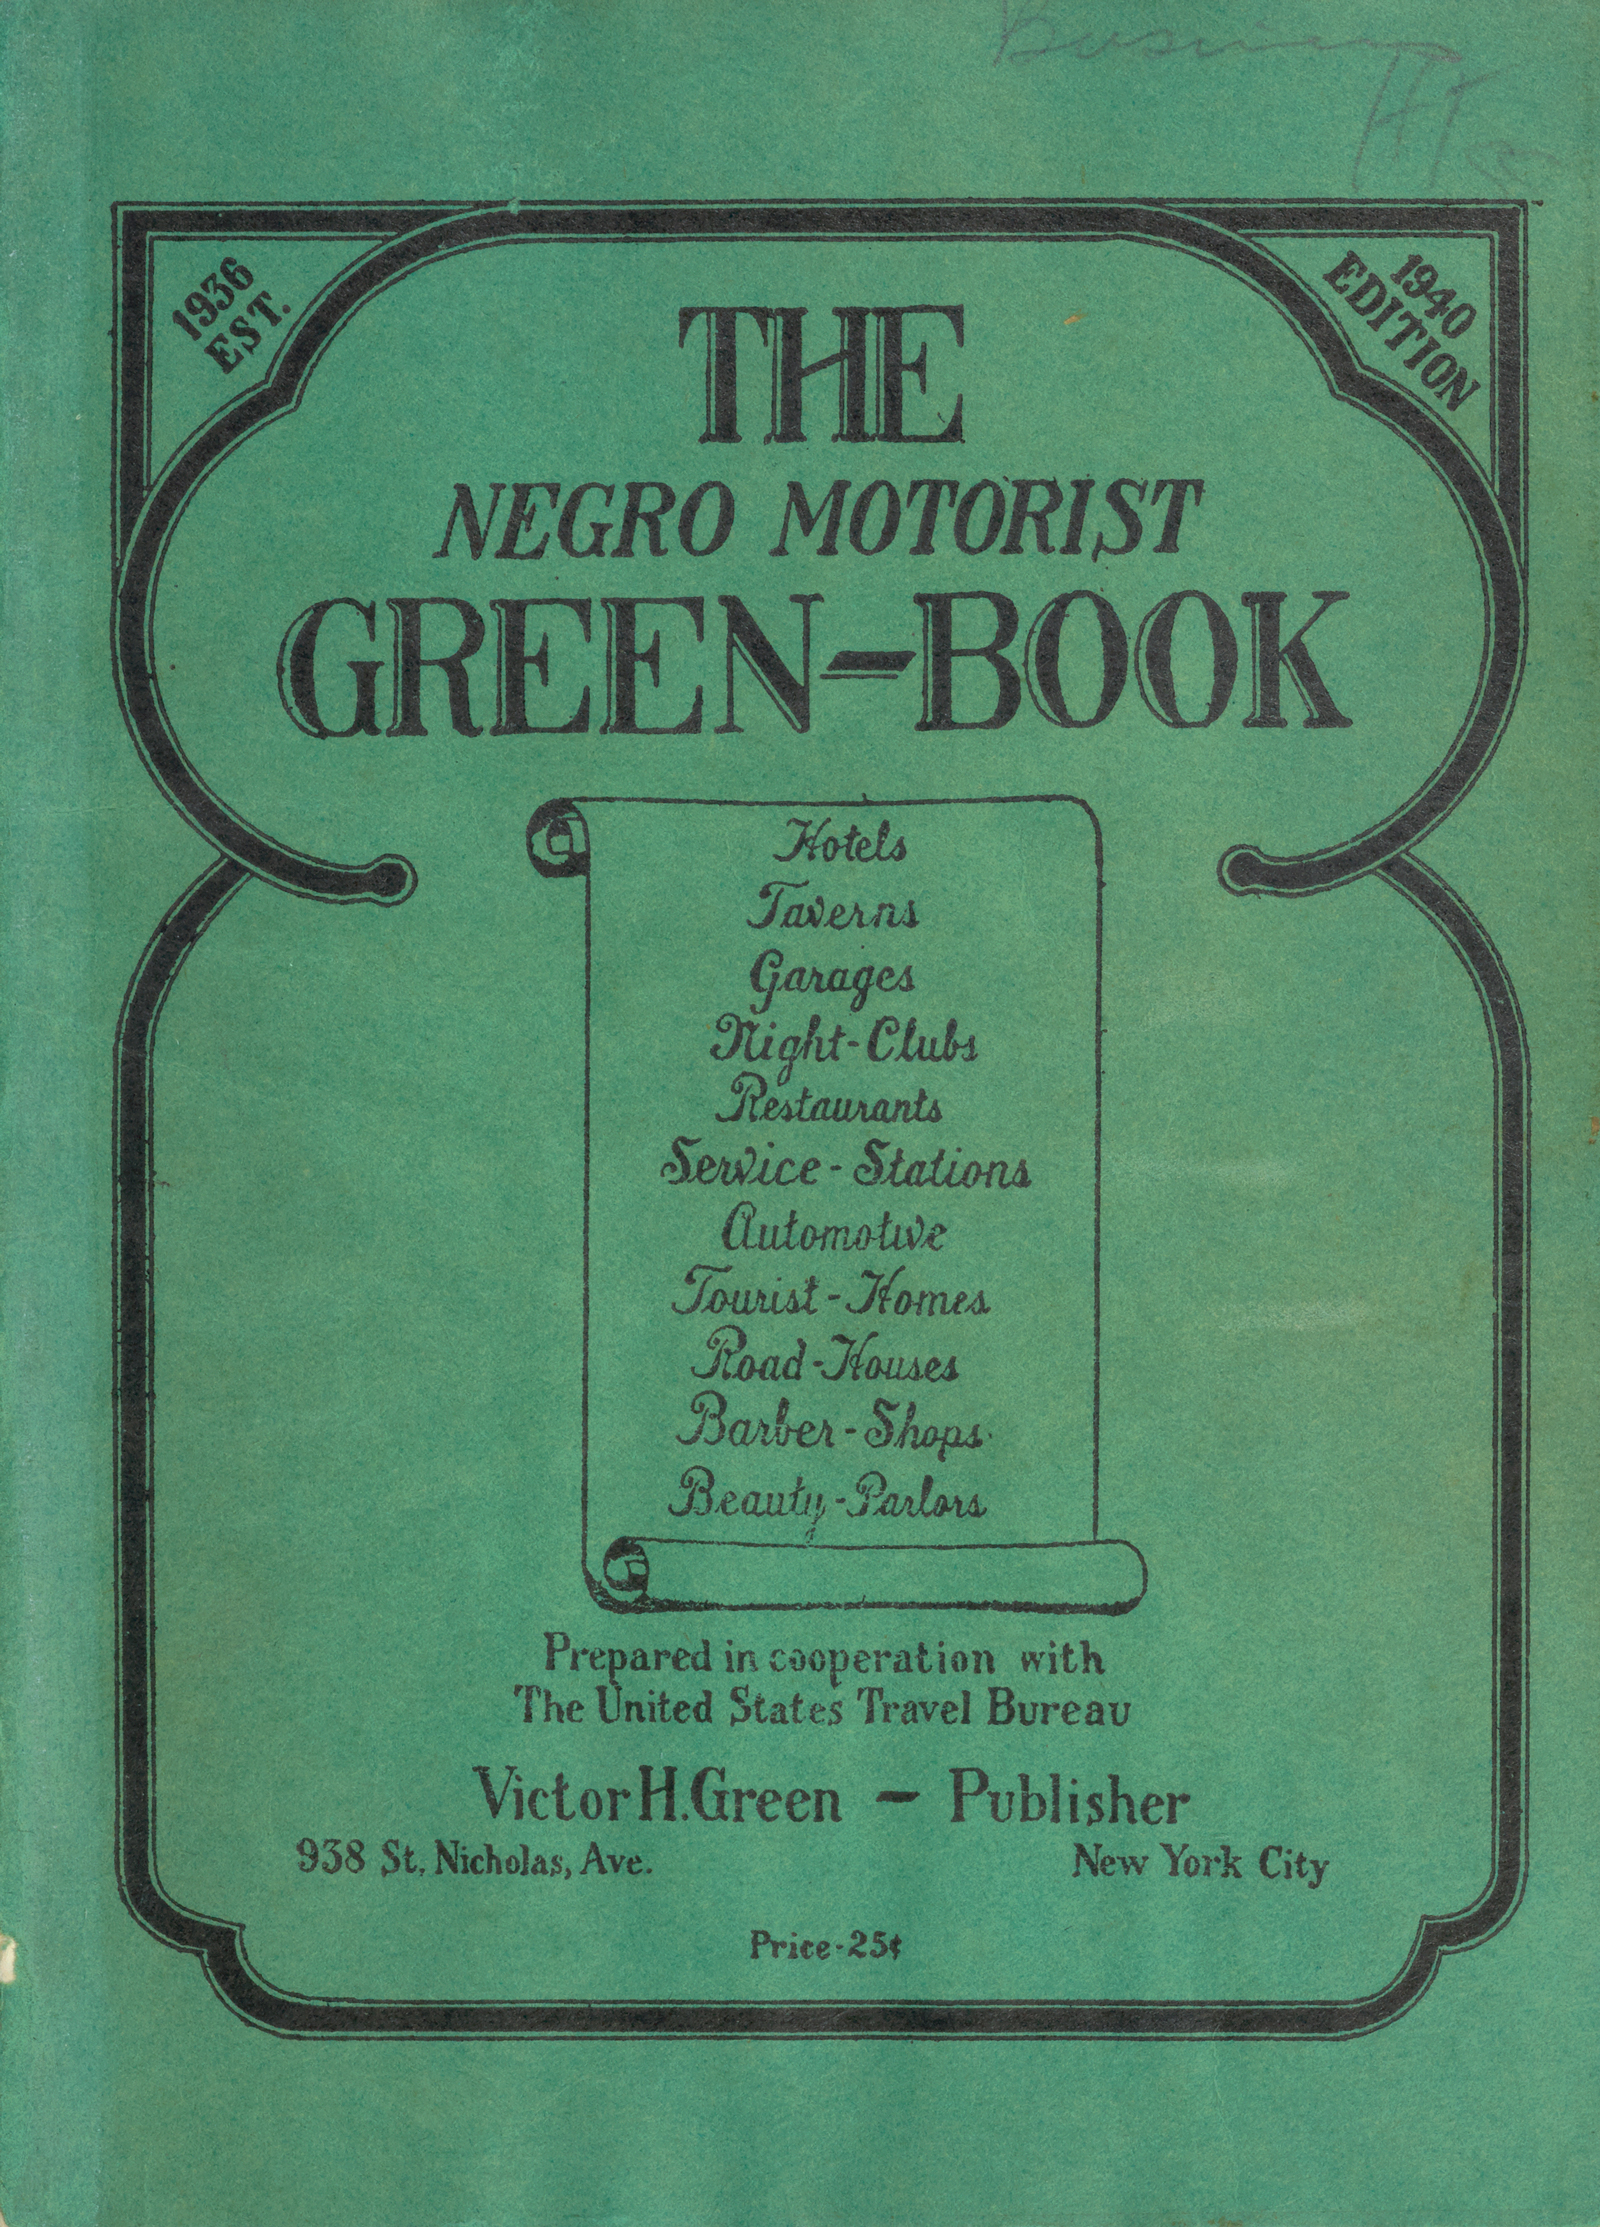 The Negro Motorist Green Book, 1940